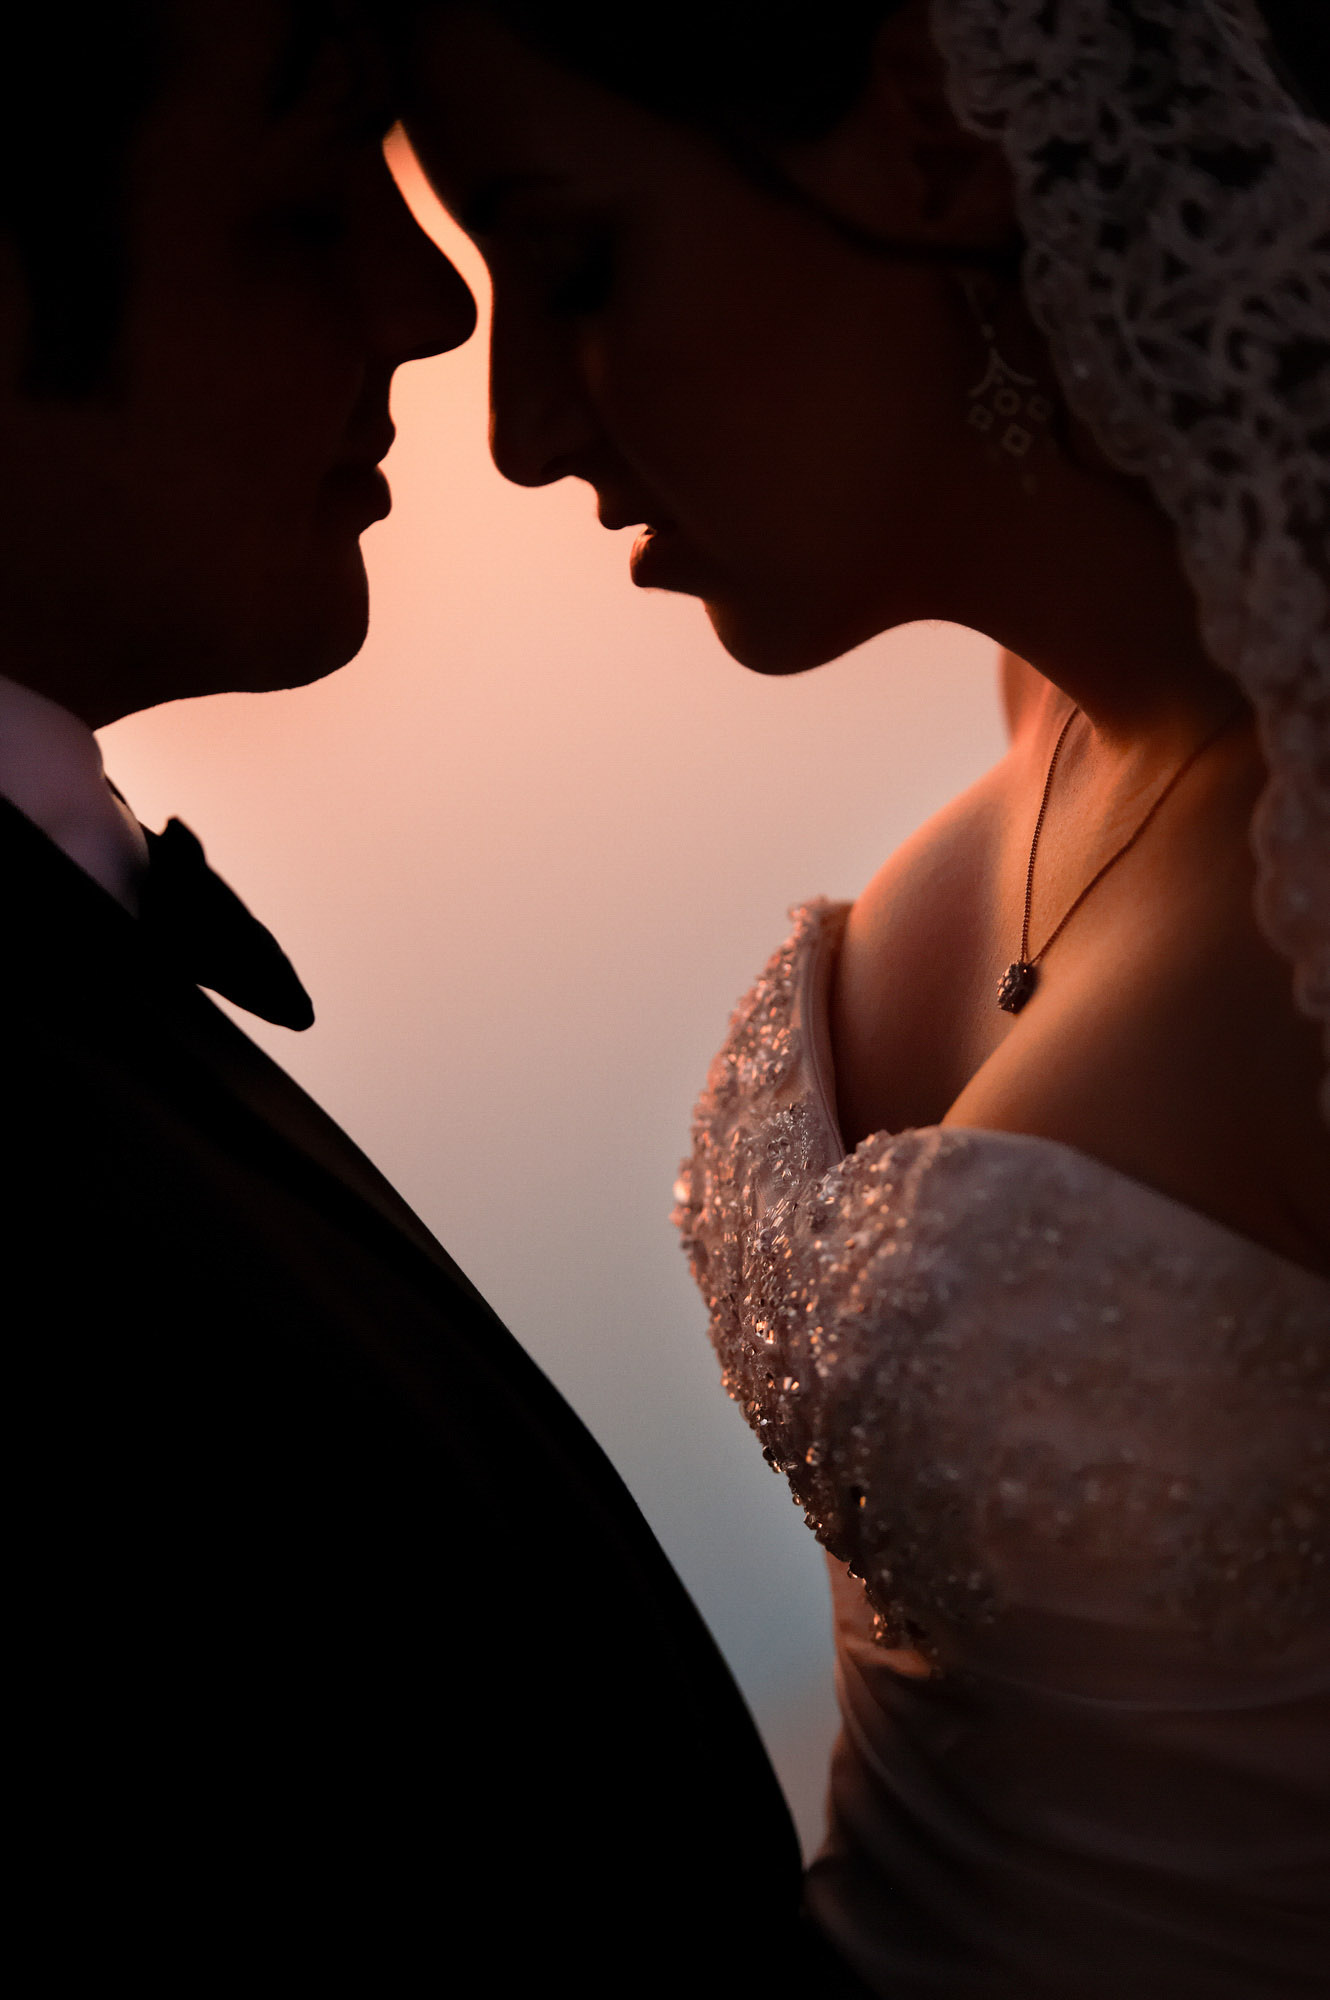 sexy-close-up-of-bride-and-groom-best-wedding-photos-jerry-ghionis-top-las-vegas-photographer